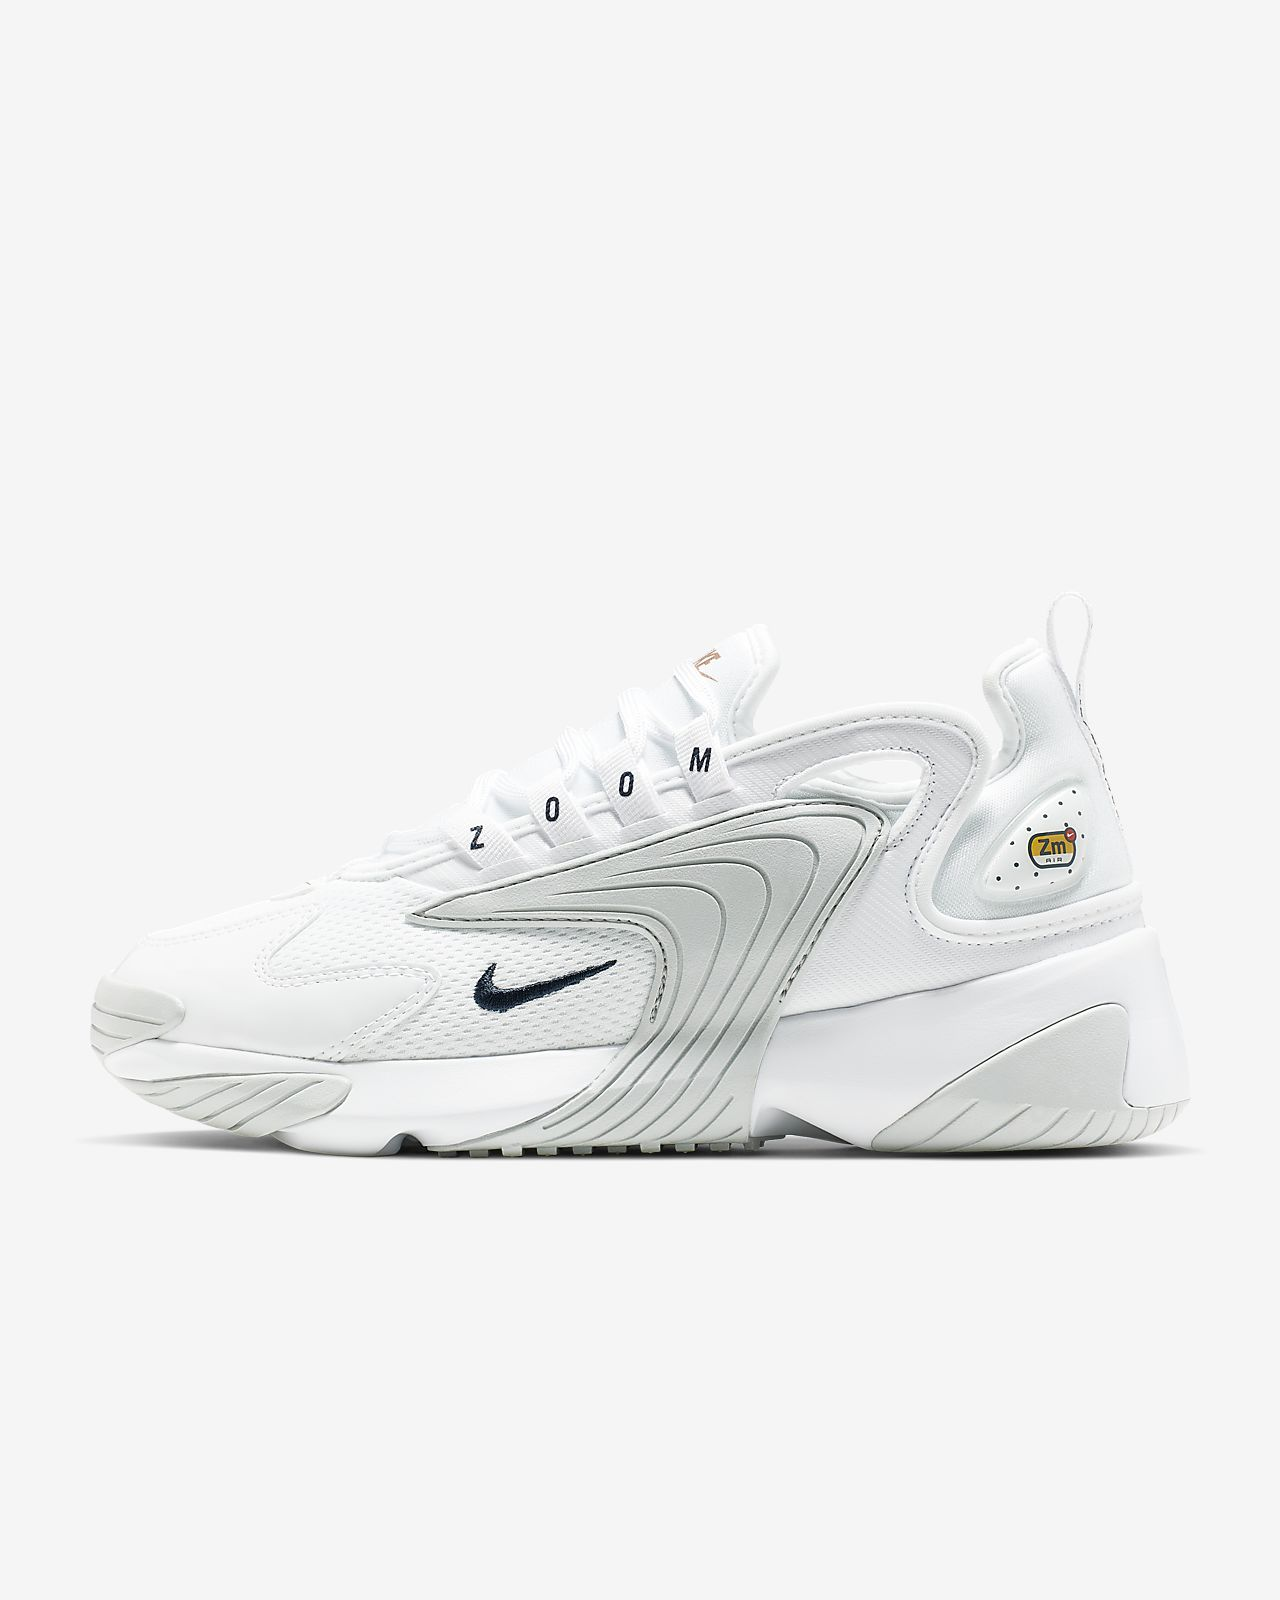 Nike Zoom 2K Unité Totale Women's Shoe